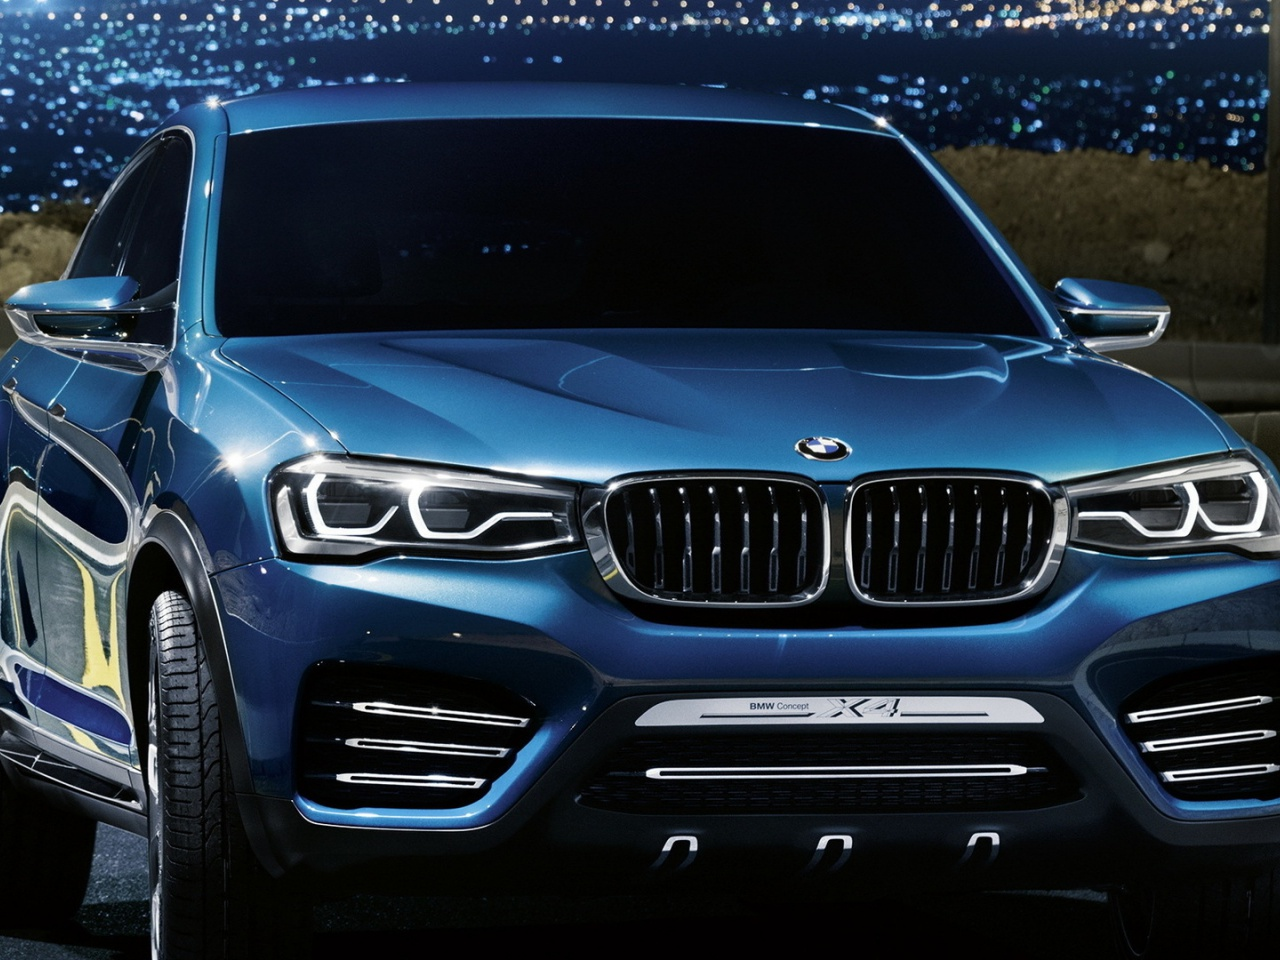 1280x960 blue bmw x4 front angle desktop pc and mac wallpaper